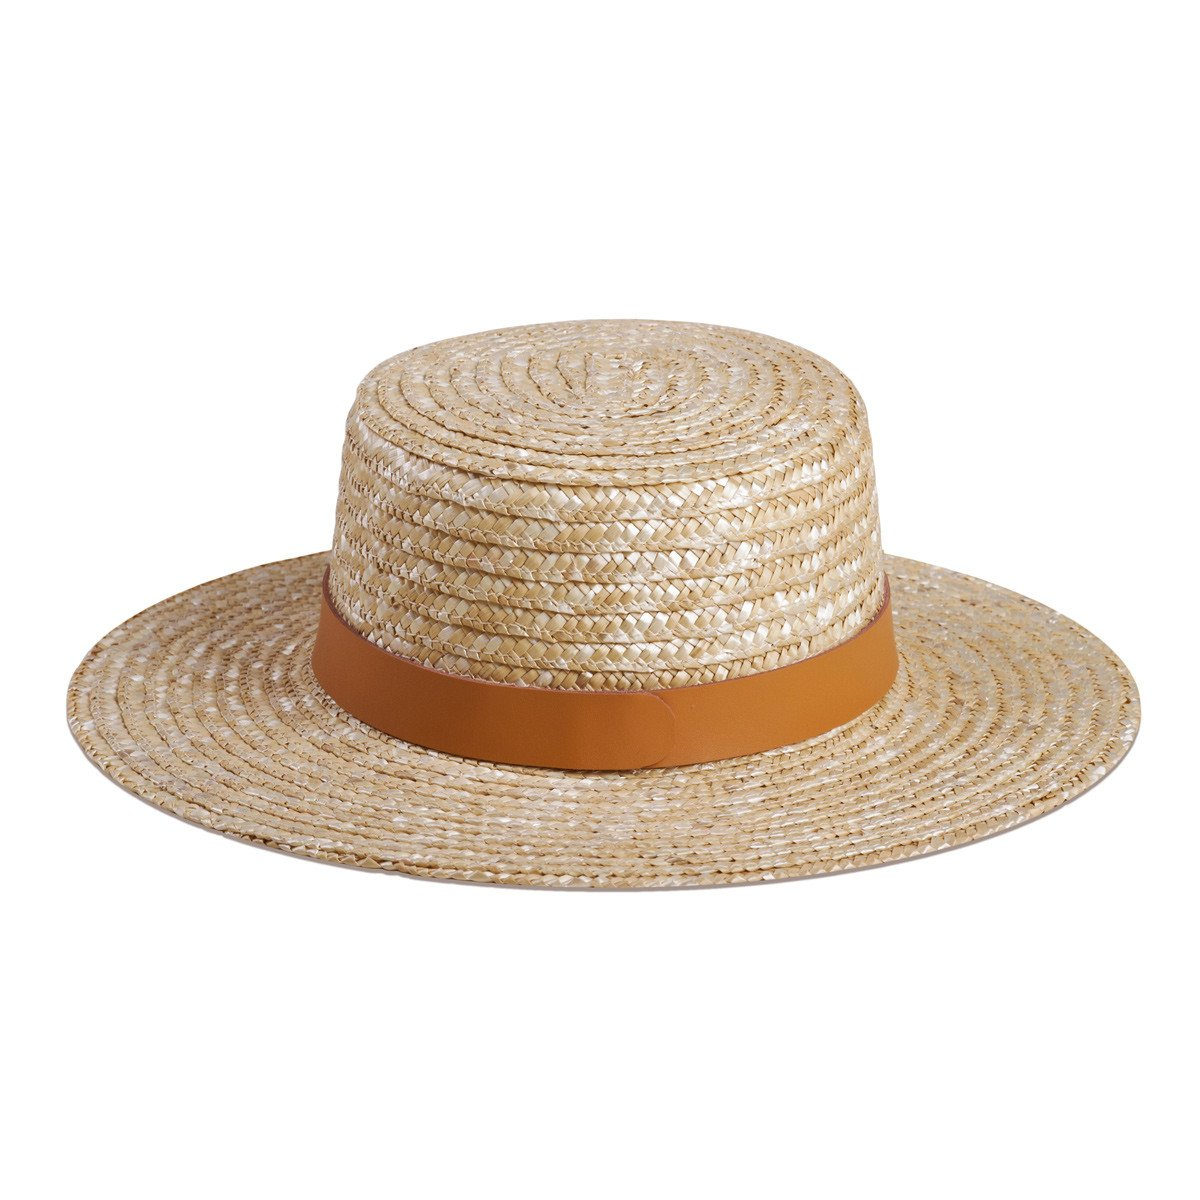 Spencer Terracotta Natural Straw Boater Hat - Lack of Color